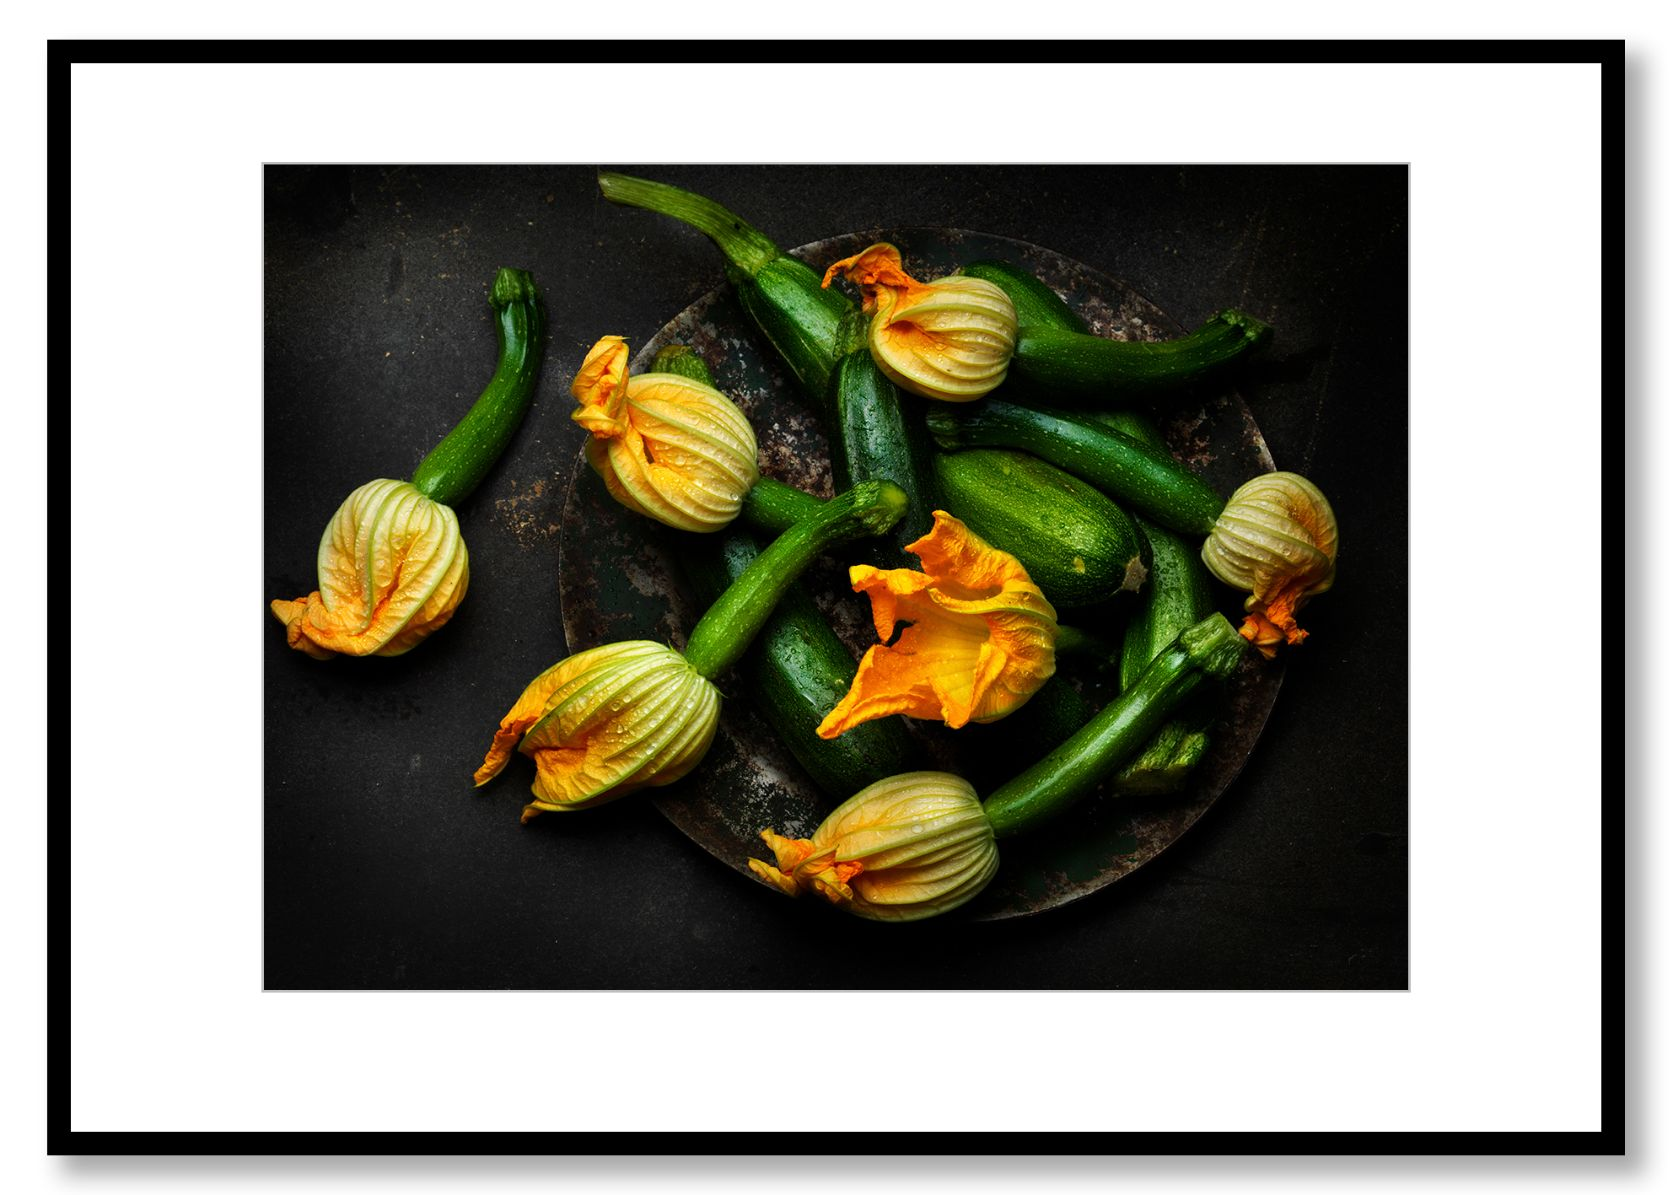 Squash Blossom. Food art. Prints for sale. Photo by Fredrik Rege